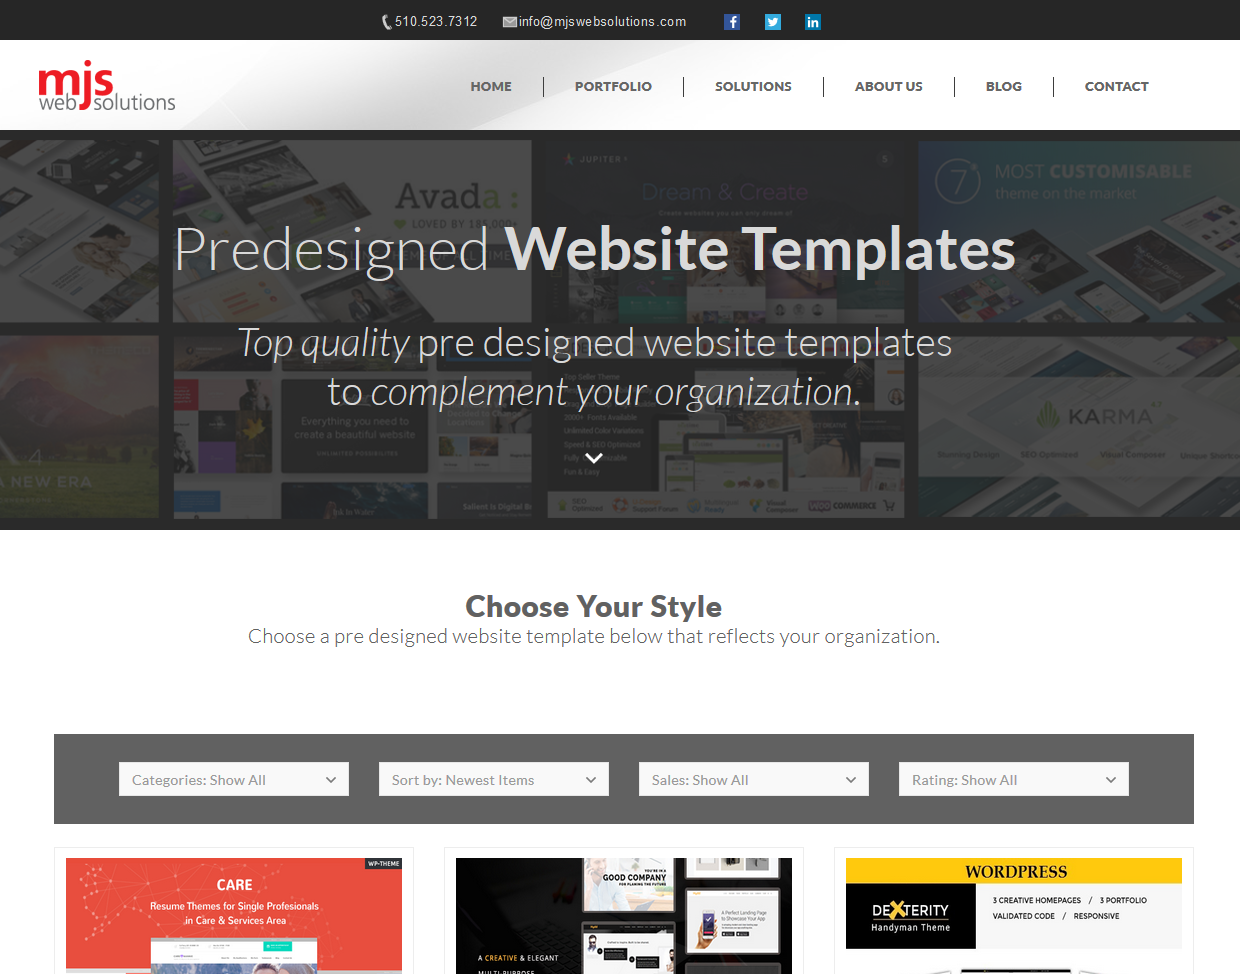 New Pre-Designed Website Template Page